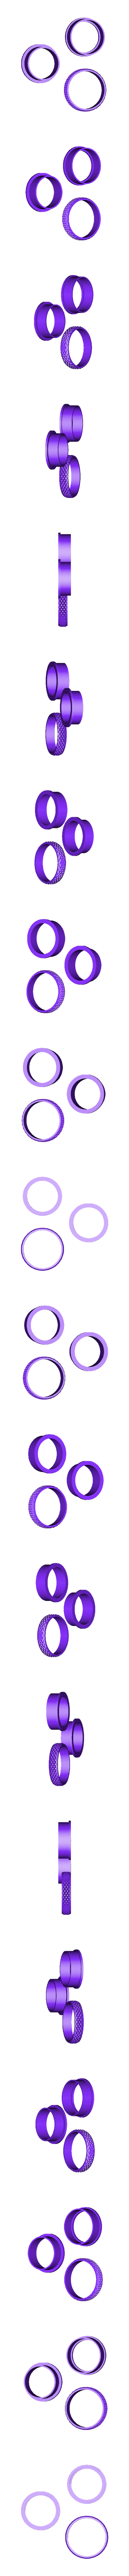 knurb_ring.stl Download free STL file Customizable Fidget Spinner Ring • 3D printing template, Not3dred